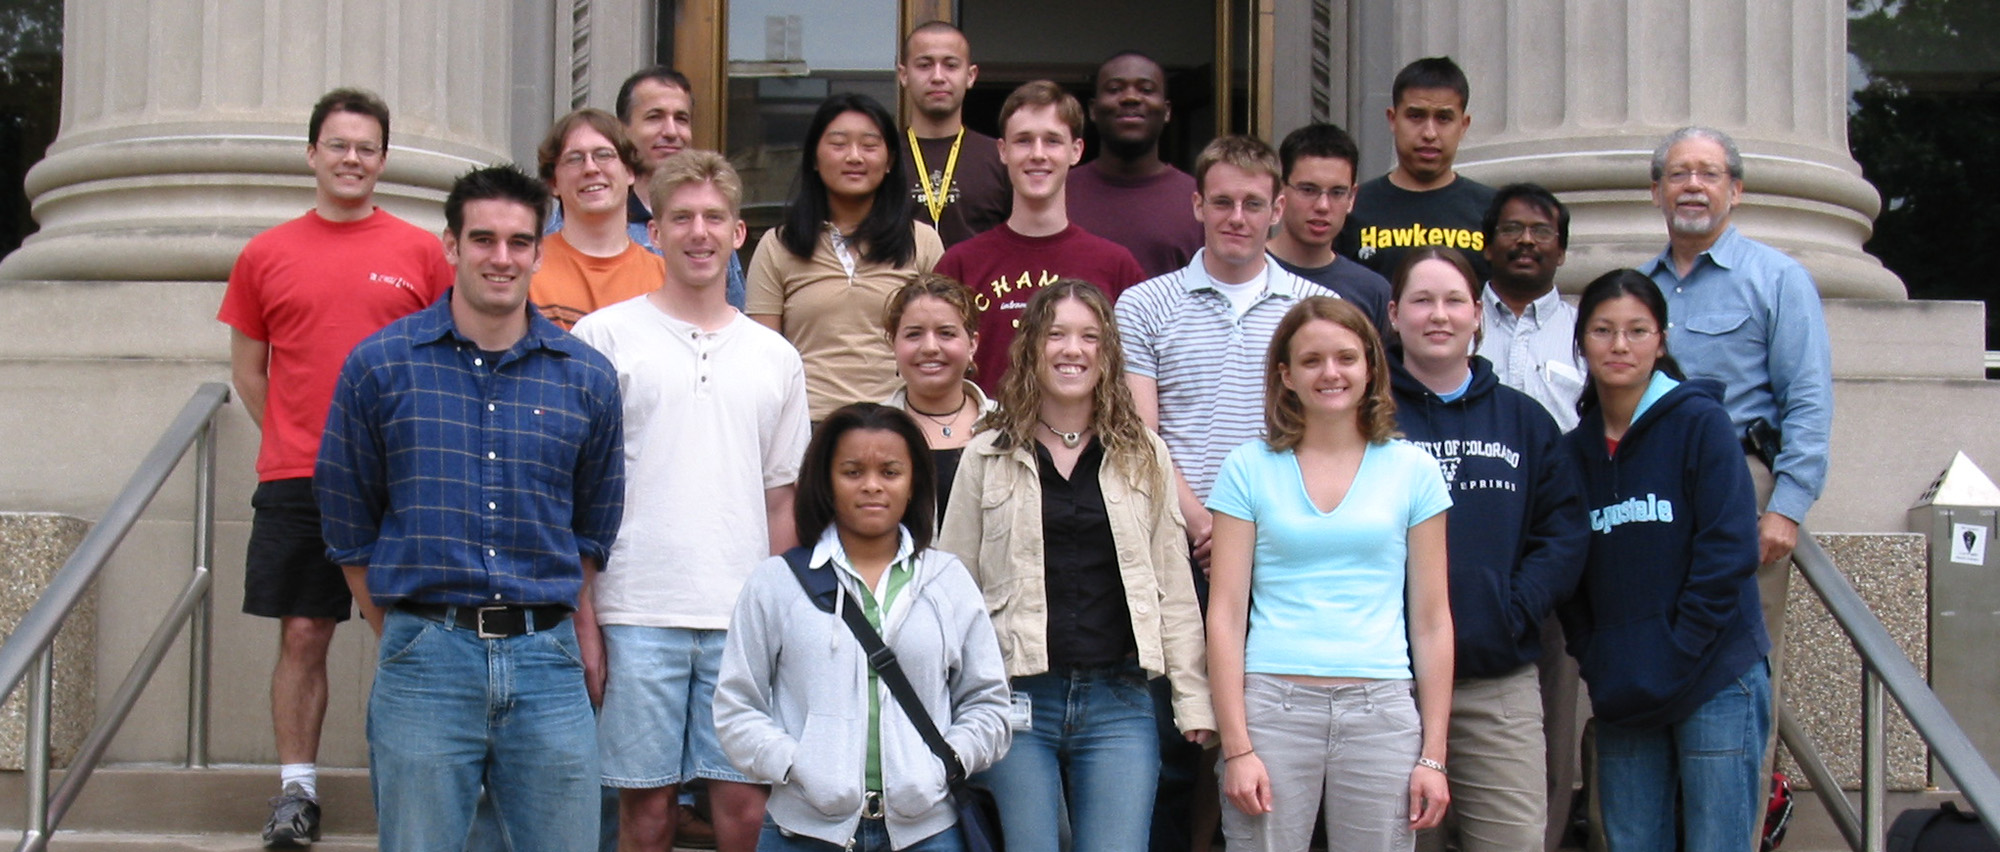 2004 Research Experience for Undergraduates Participants